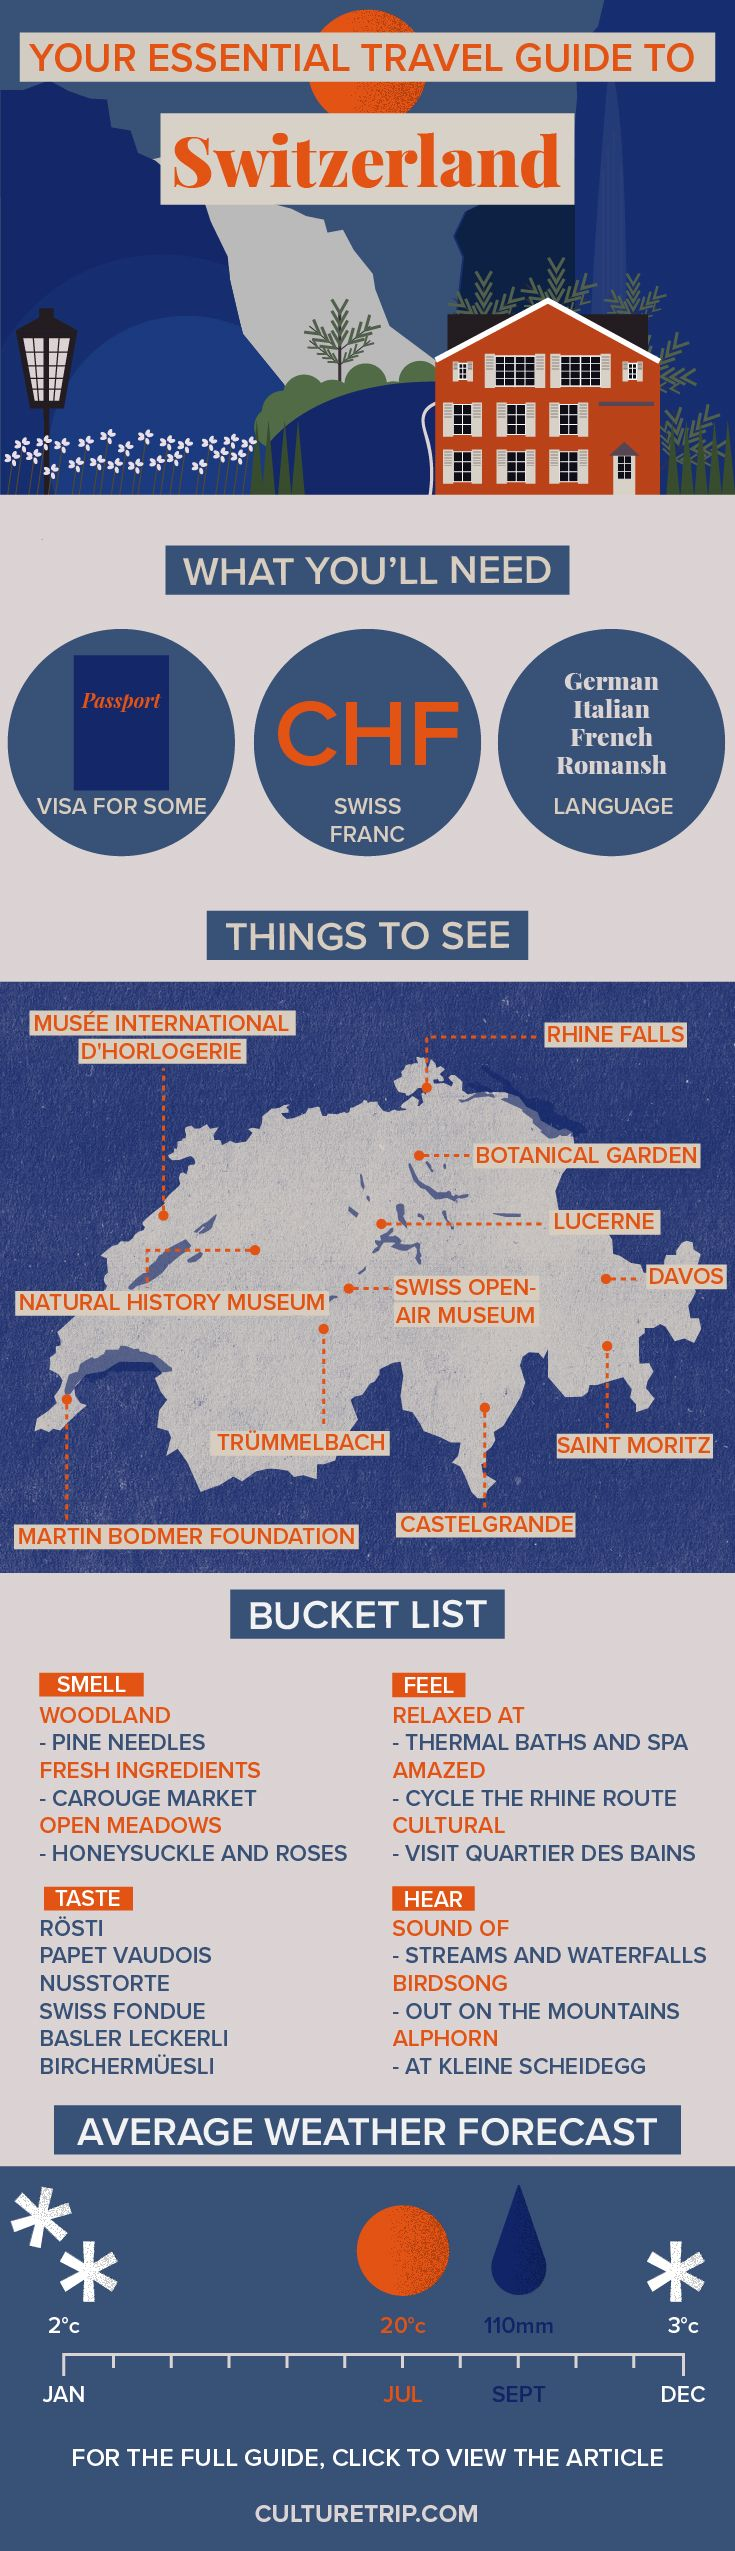 Your Essential Travel Guide to Switzerland Infographic